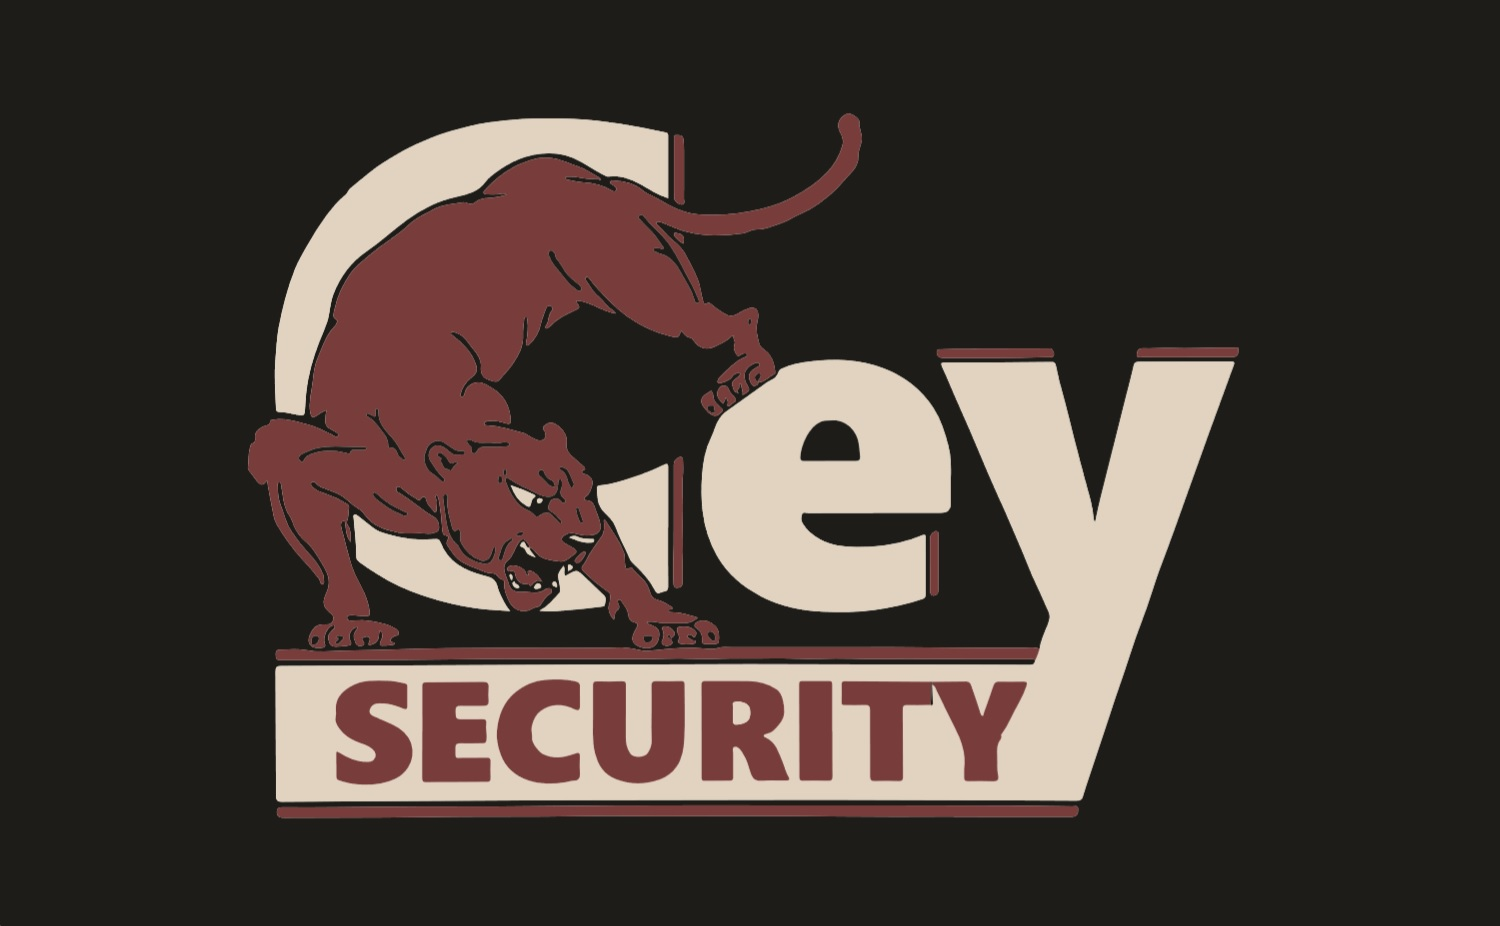 Cey Security